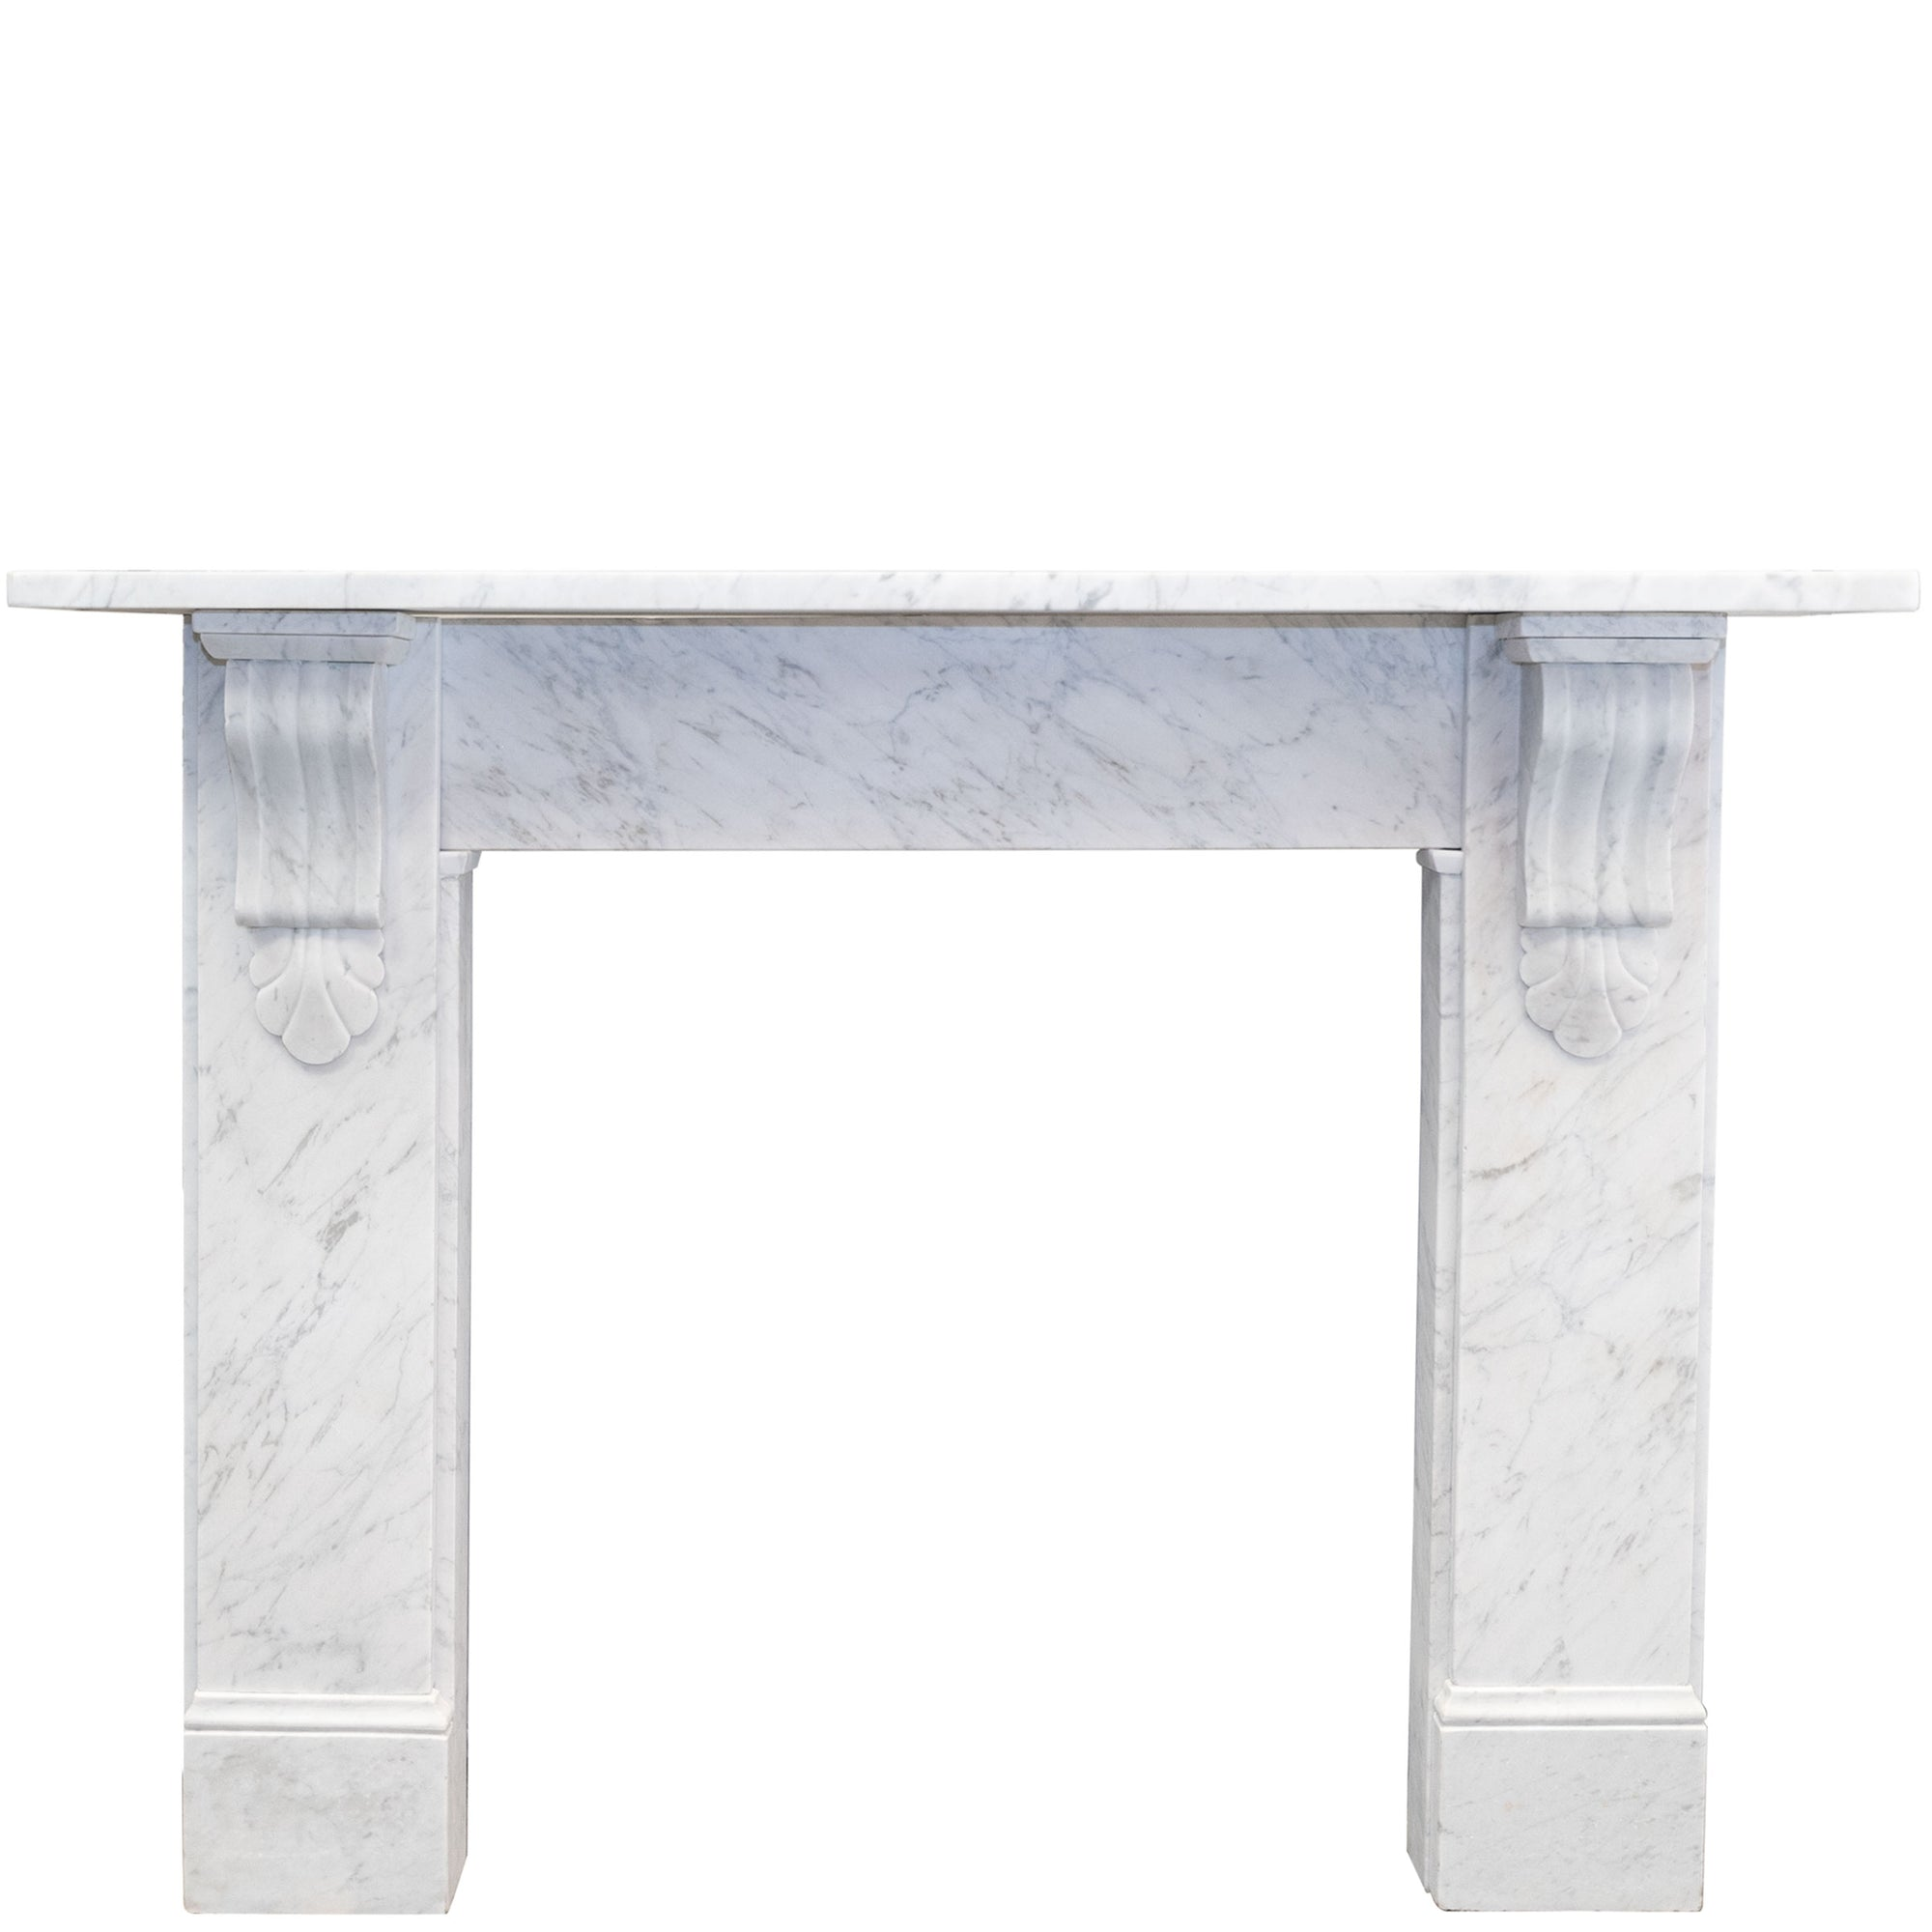 Antique Victorian Marble Fireplace Surround with Corbels